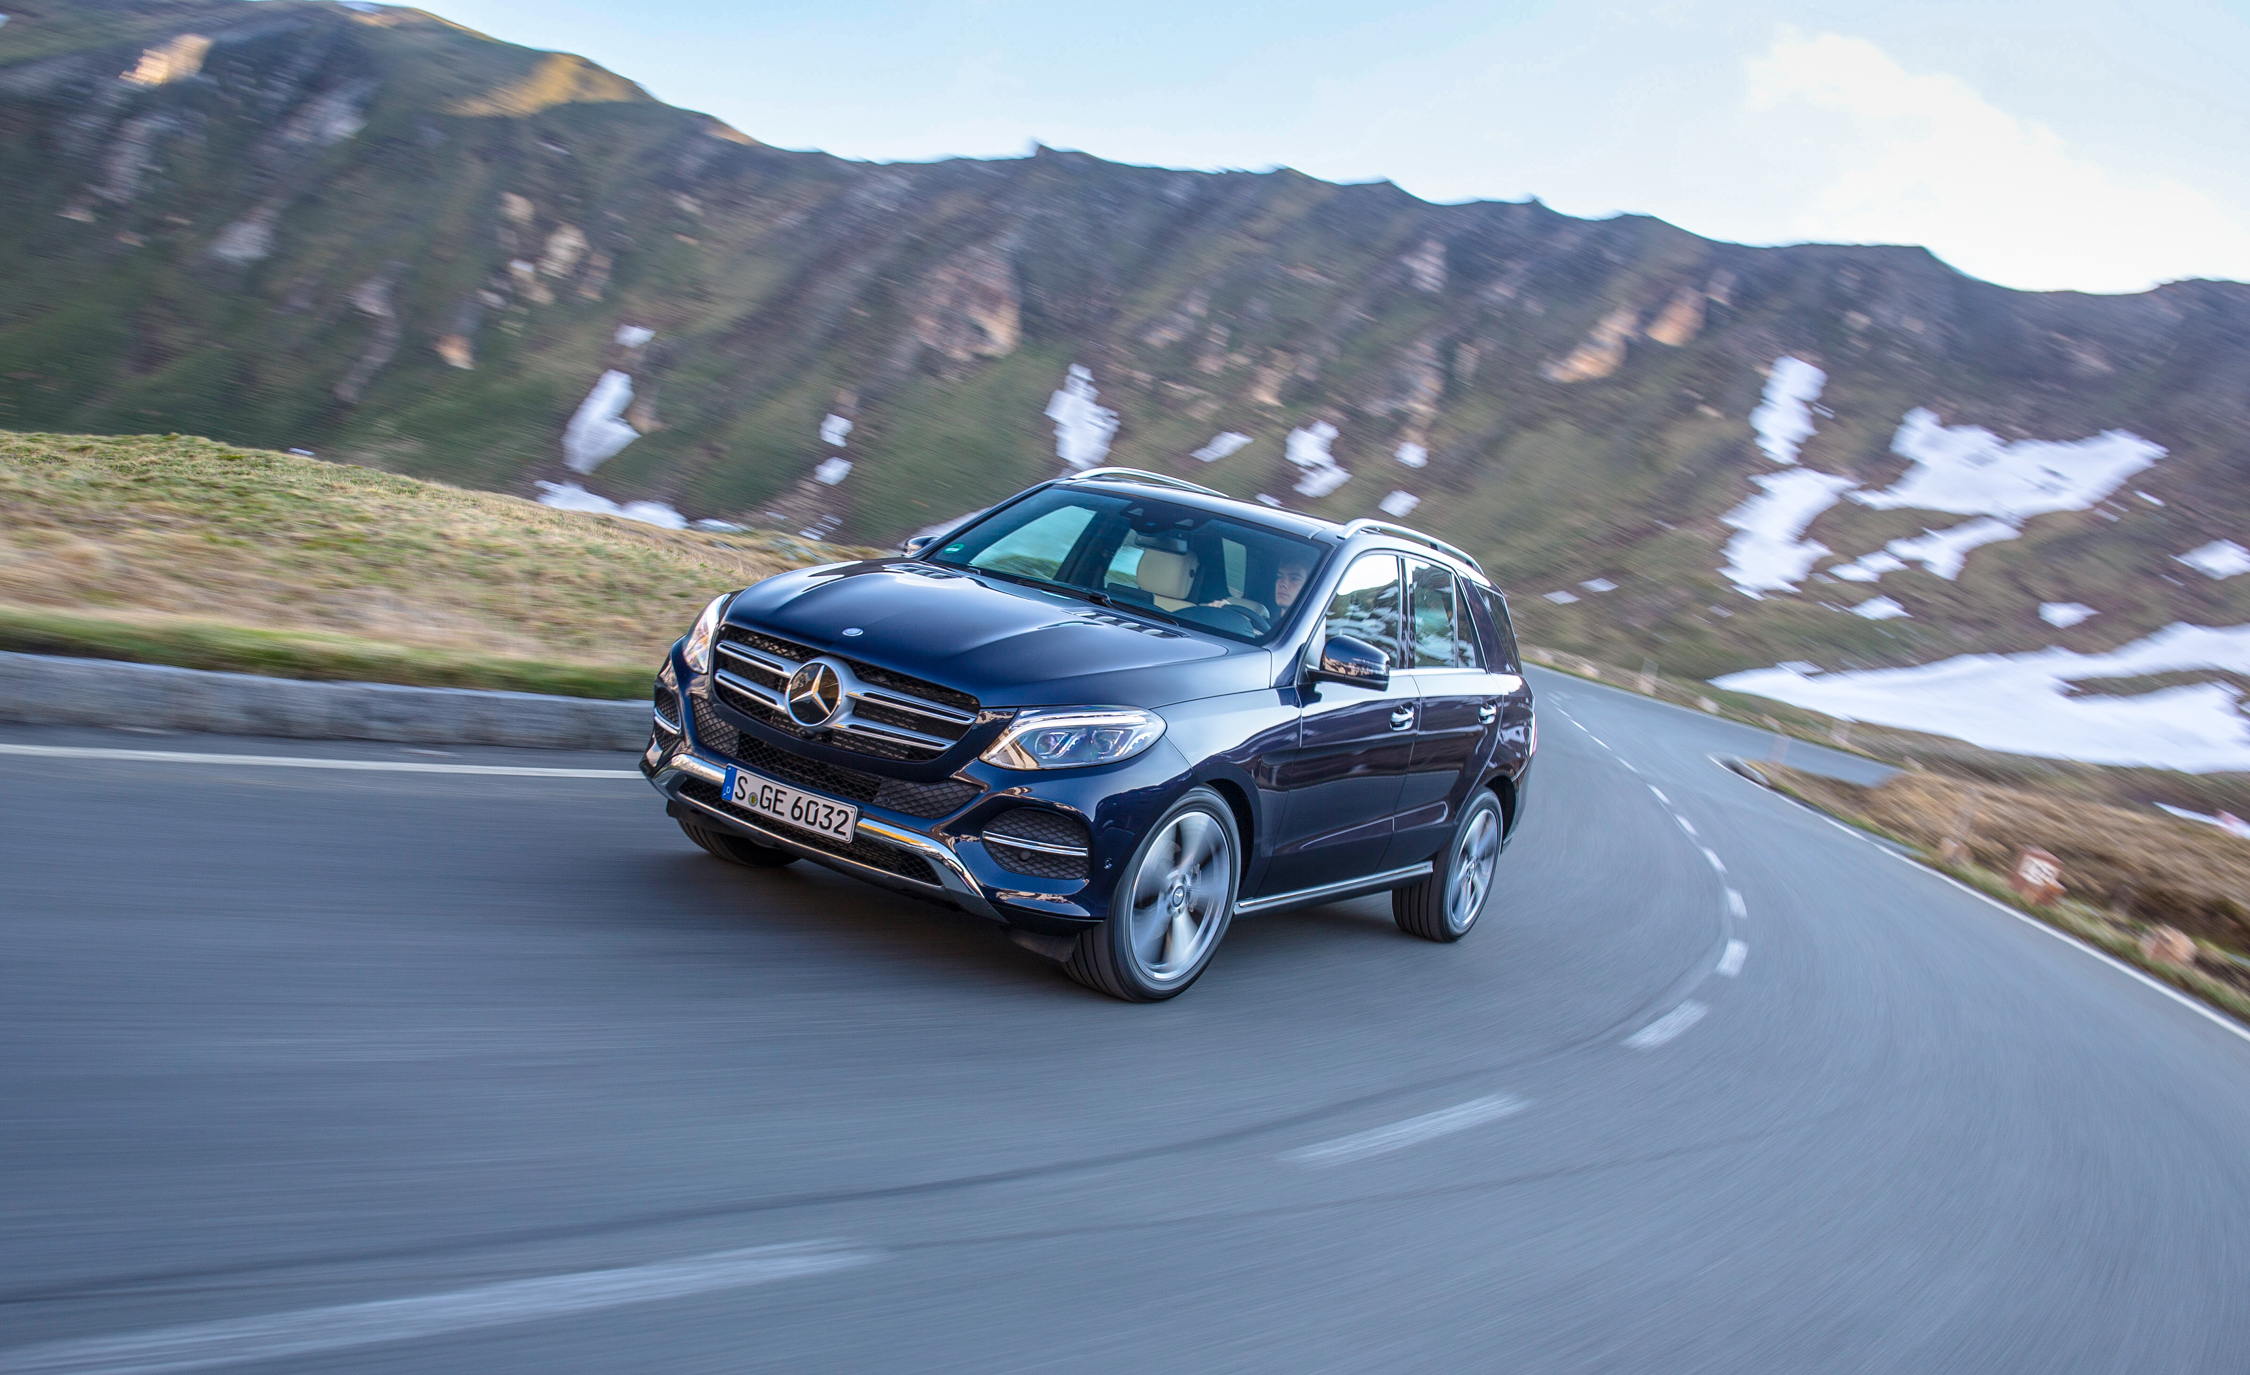 2016 Mercedes Benz GLE250d 4MATIC (Euro Spec) (Photo 6 of 43)